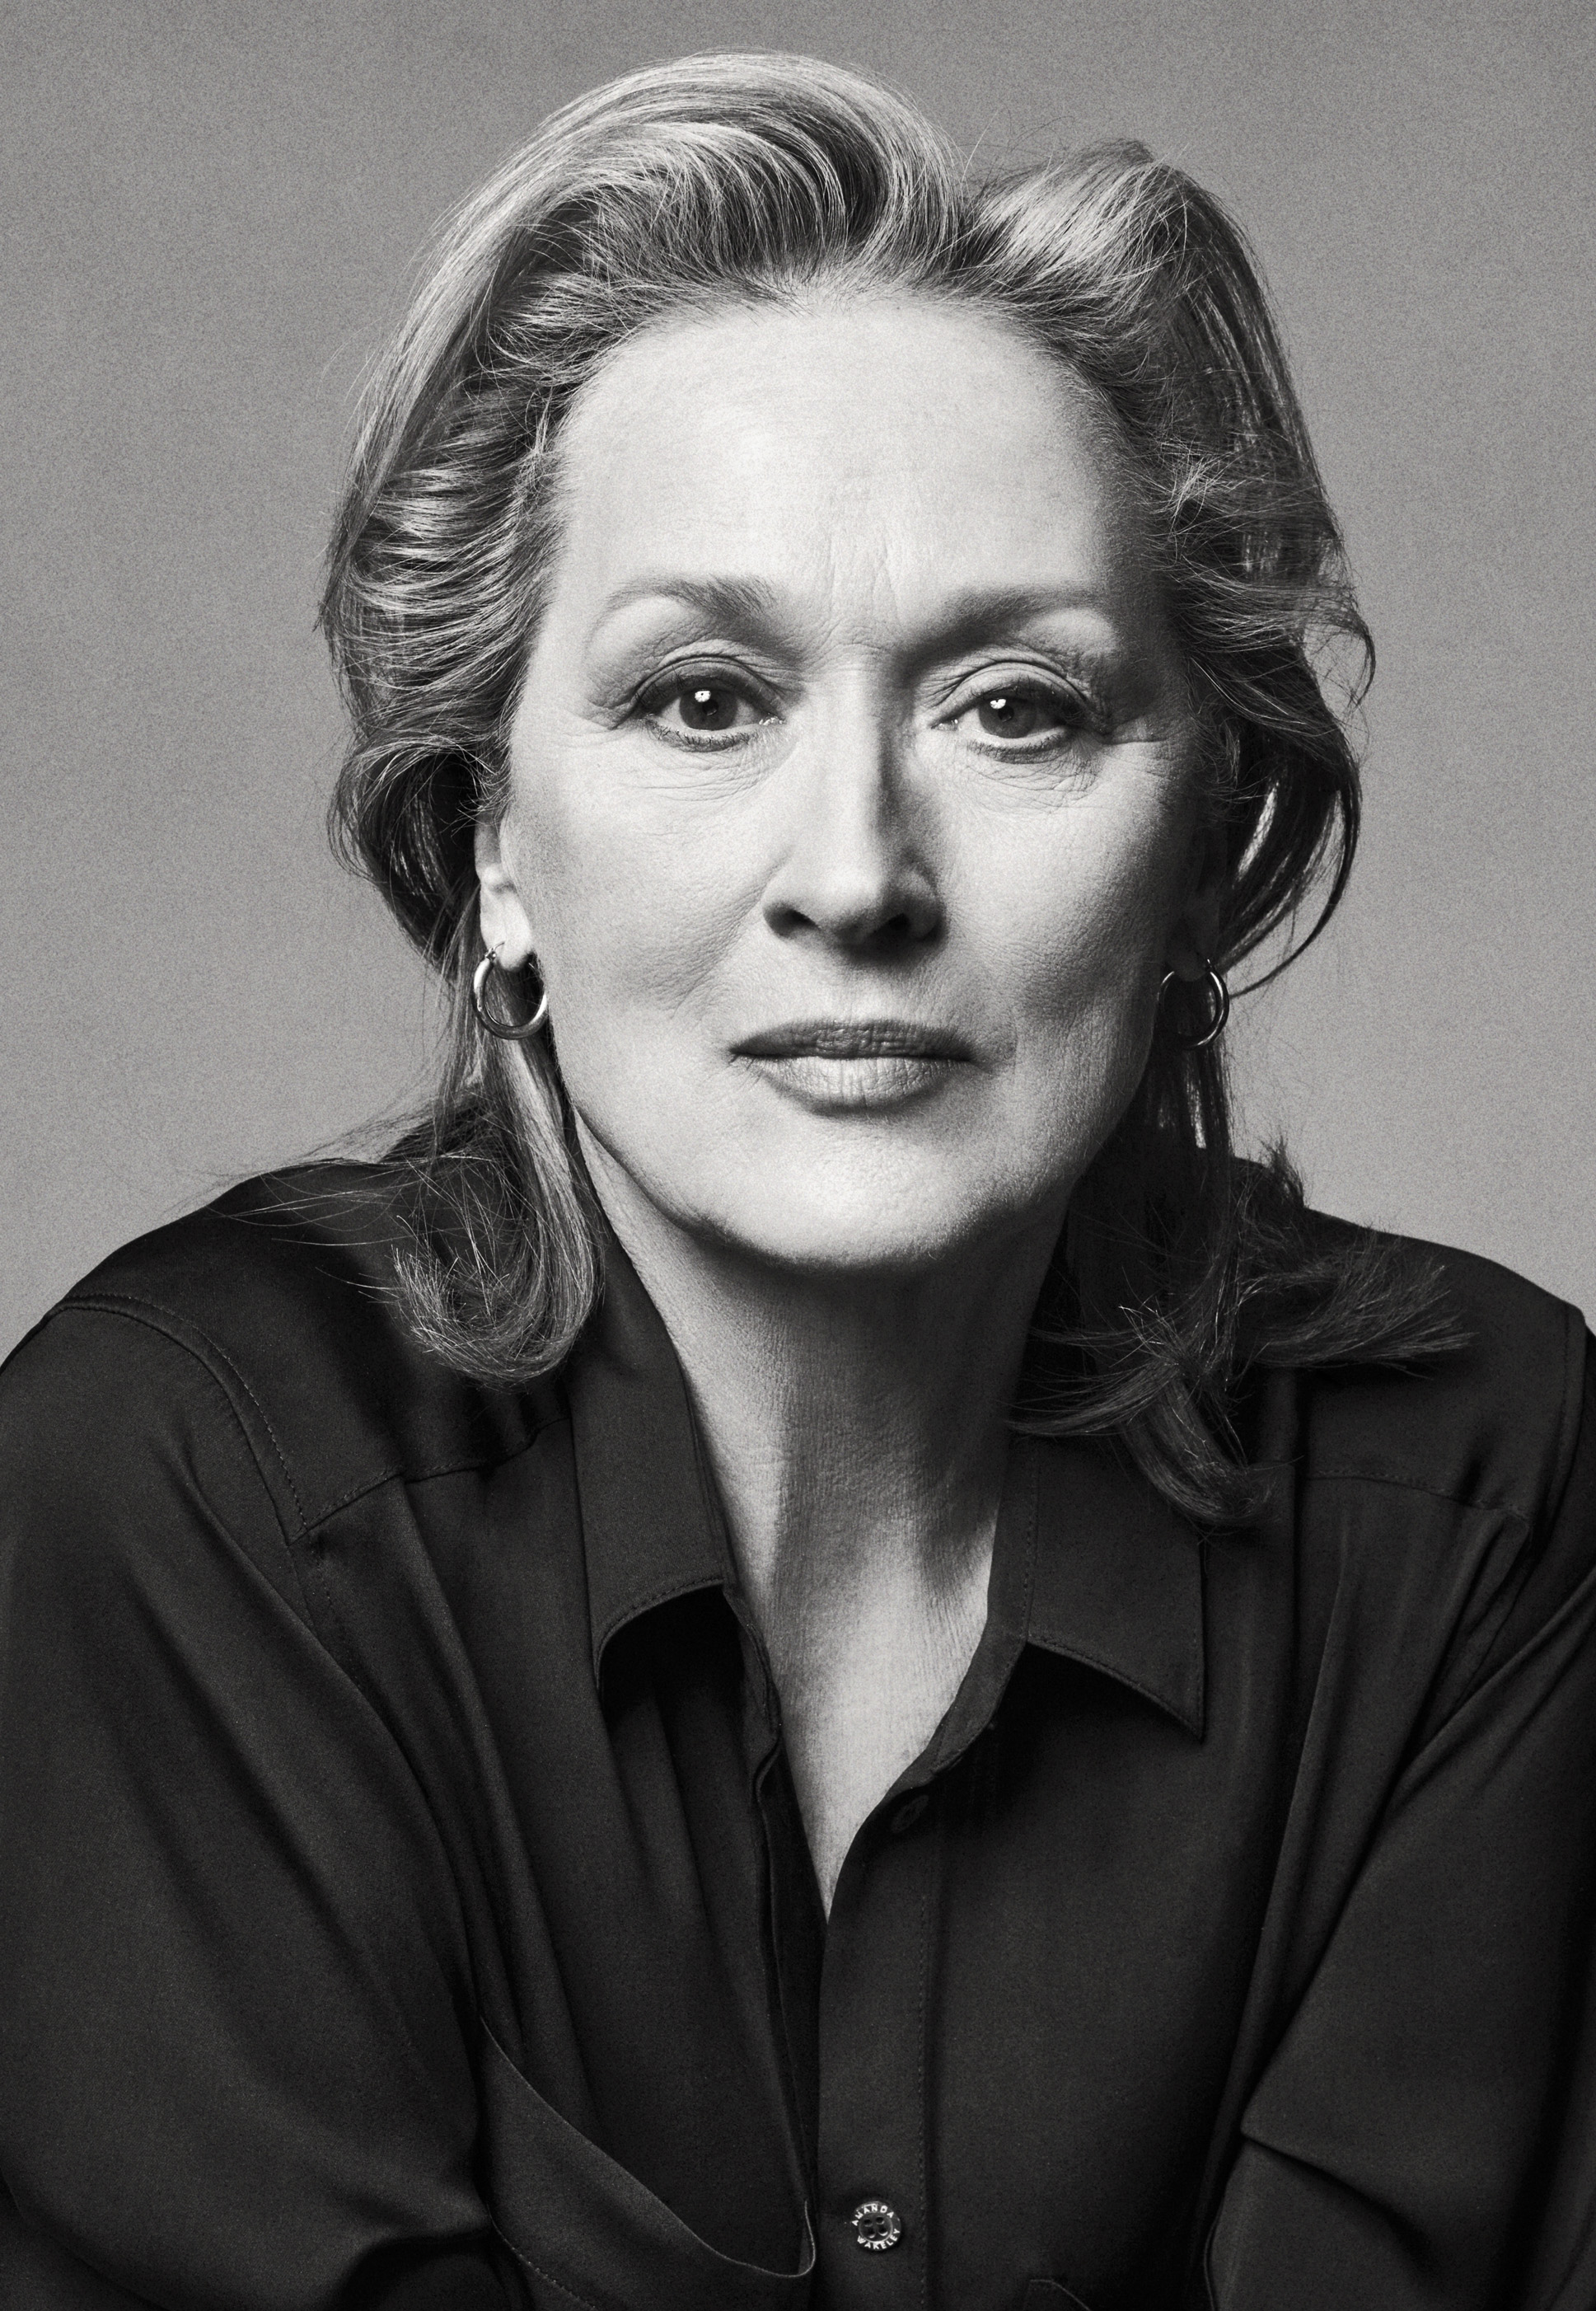 Meryl Streep2011 Performance: The Iron LadyNominated: Best Actress